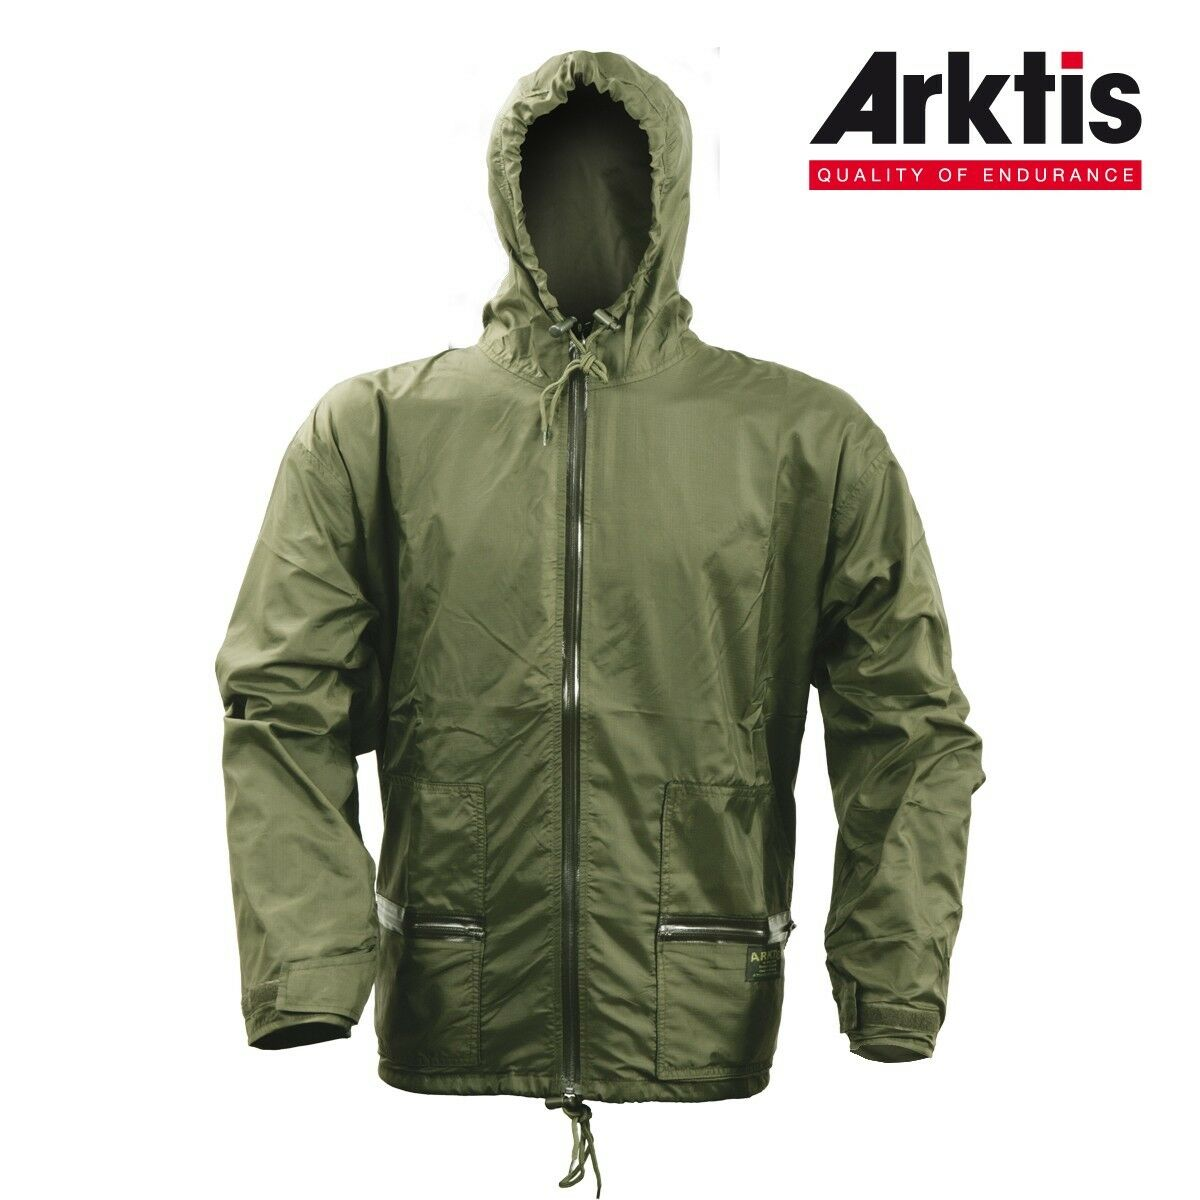 VESTE RAINSHIELD ARKTIS  A 310 OLIVE GREEN SMALL LARGE OU X-LARGE  special offer